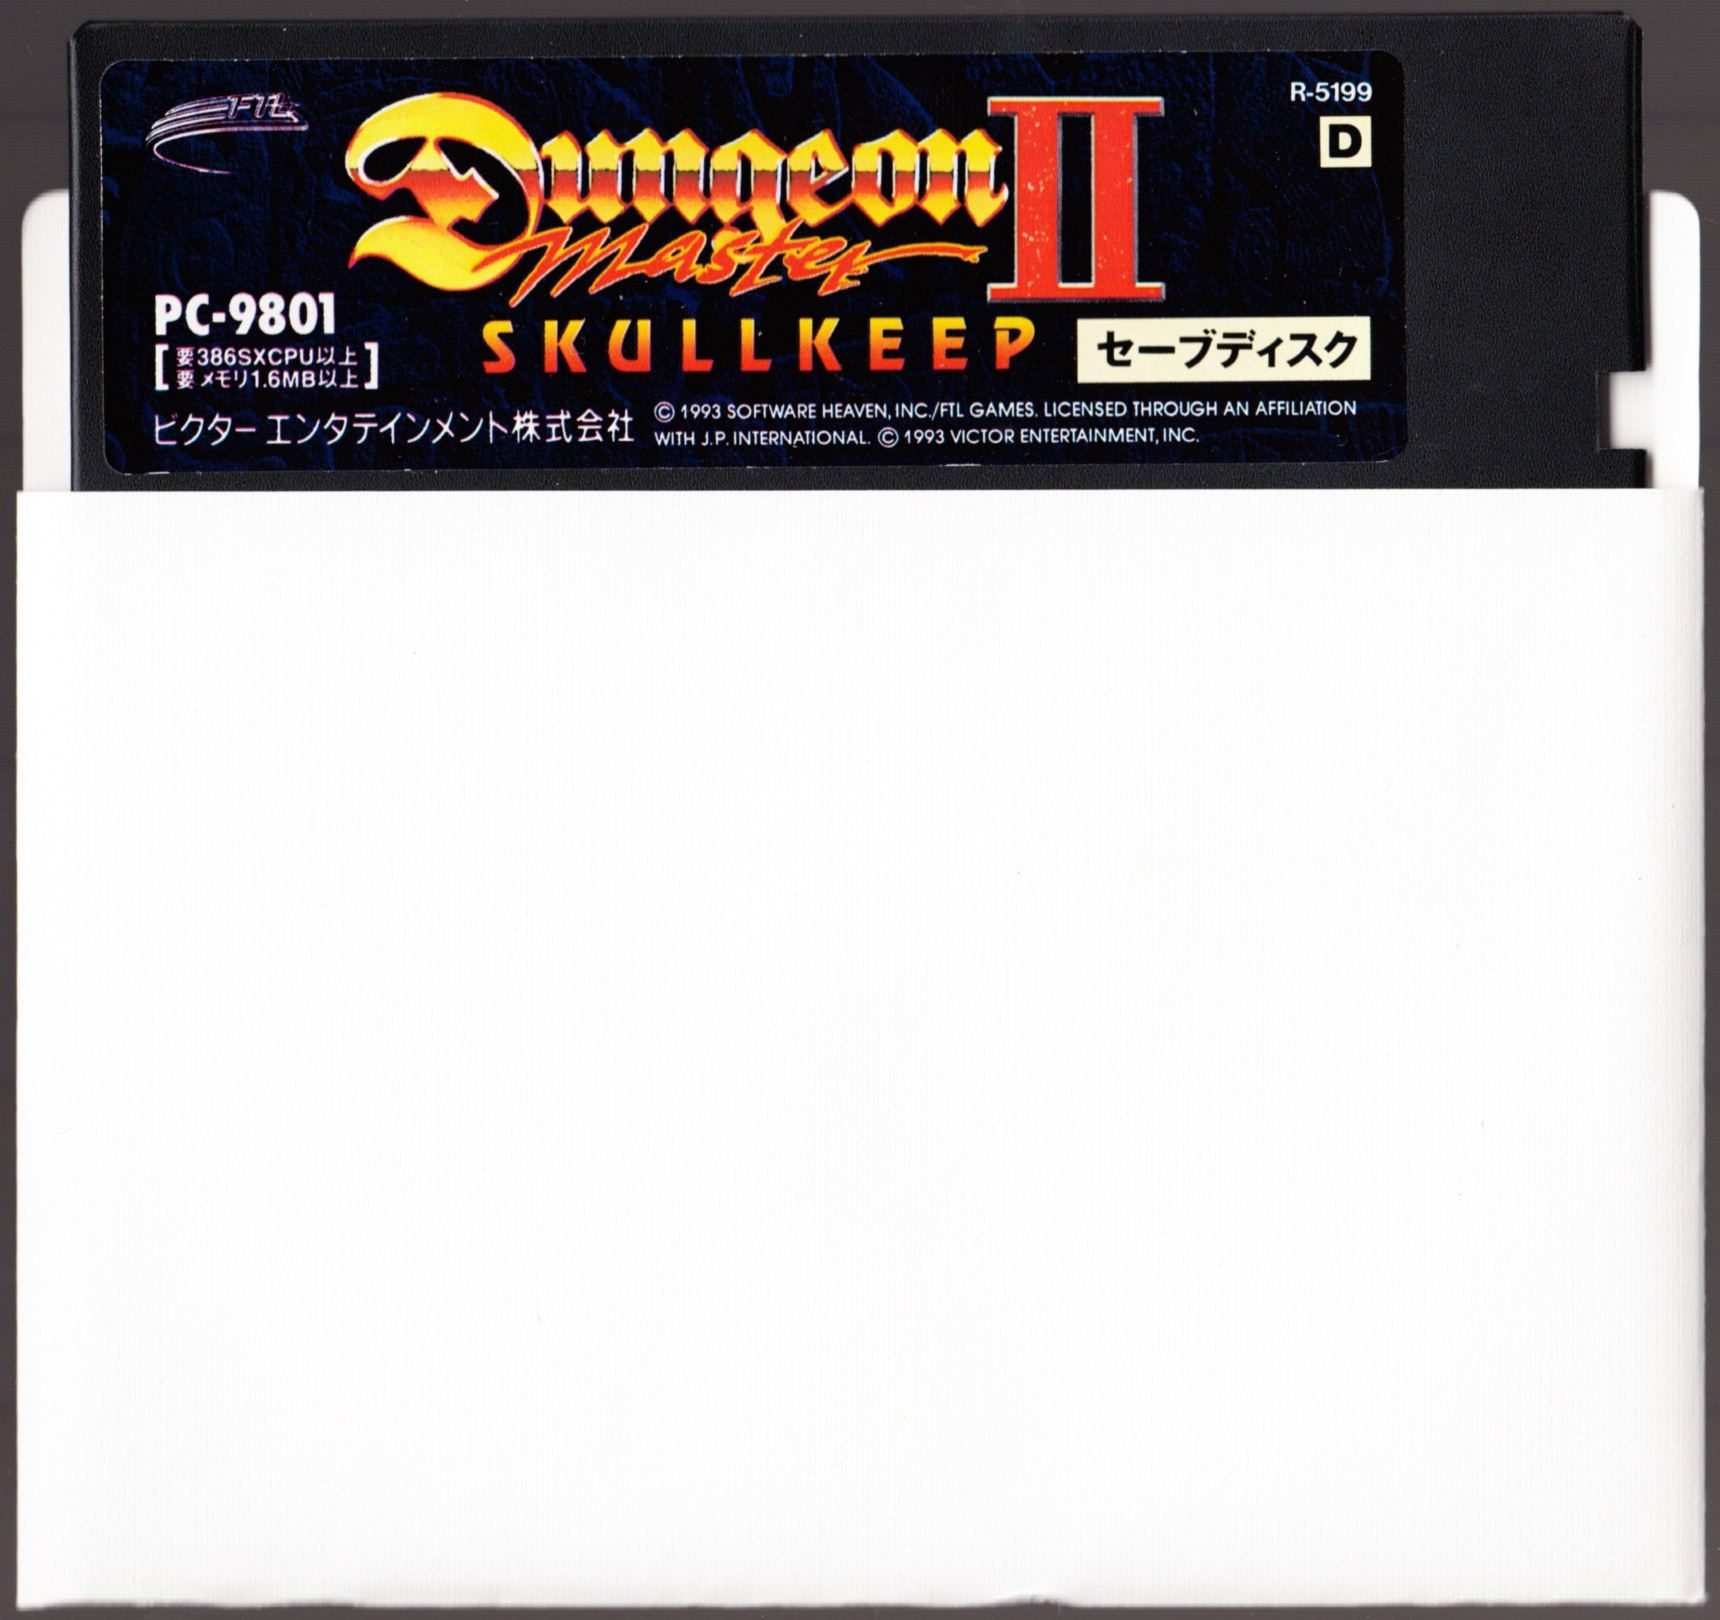 Game - Dungeon Master II - JP - PC-9801 - 5.25-inch - Disk D Save Disk - Front - Scan